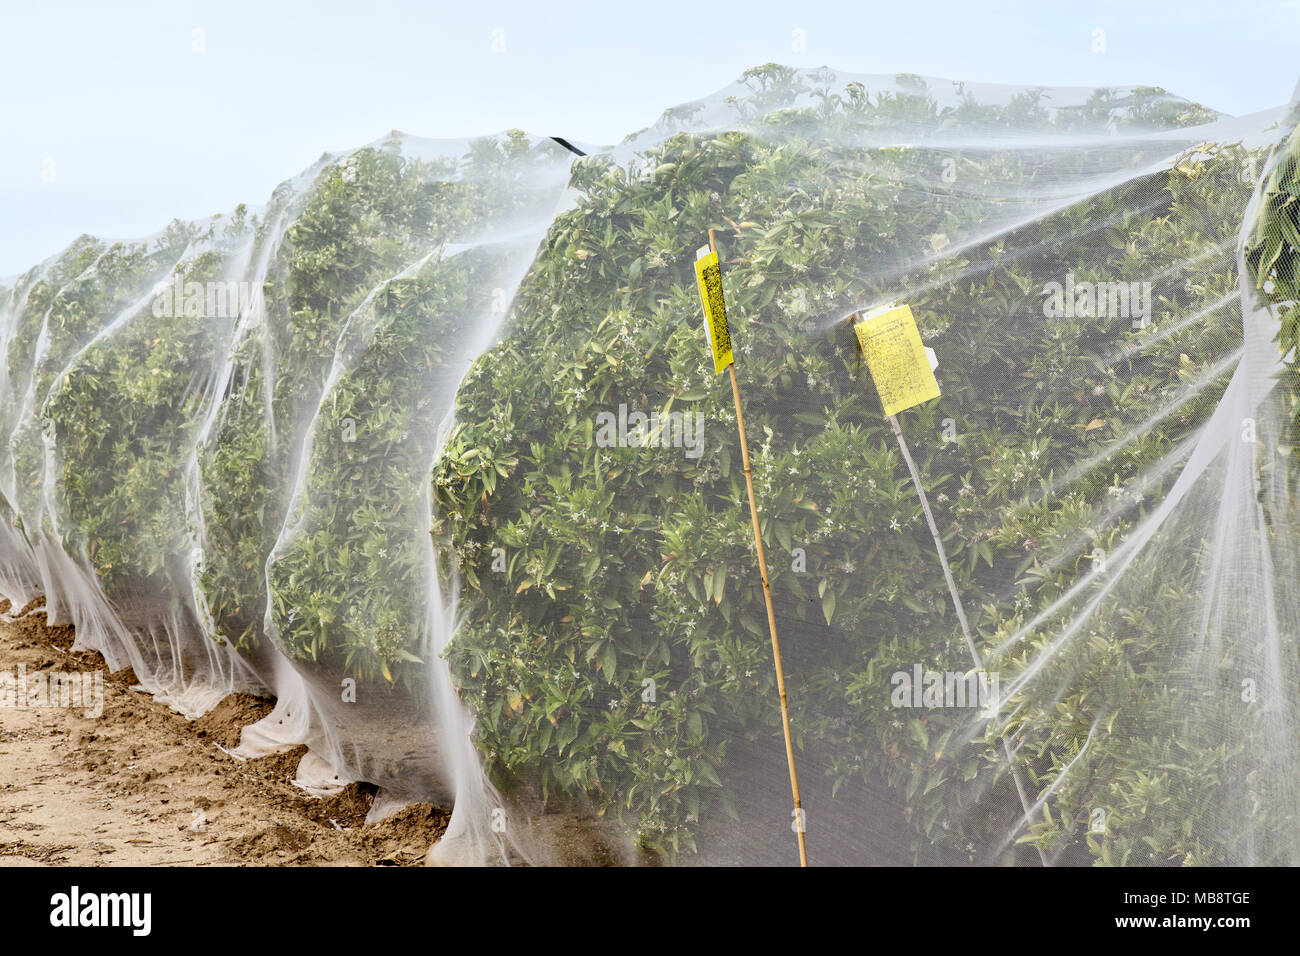 Netting protecting 'Clementine' mandarin orange citrus orchard against cross-pollination of fruit, Polyethylene fine mesh netting, - Stock Image